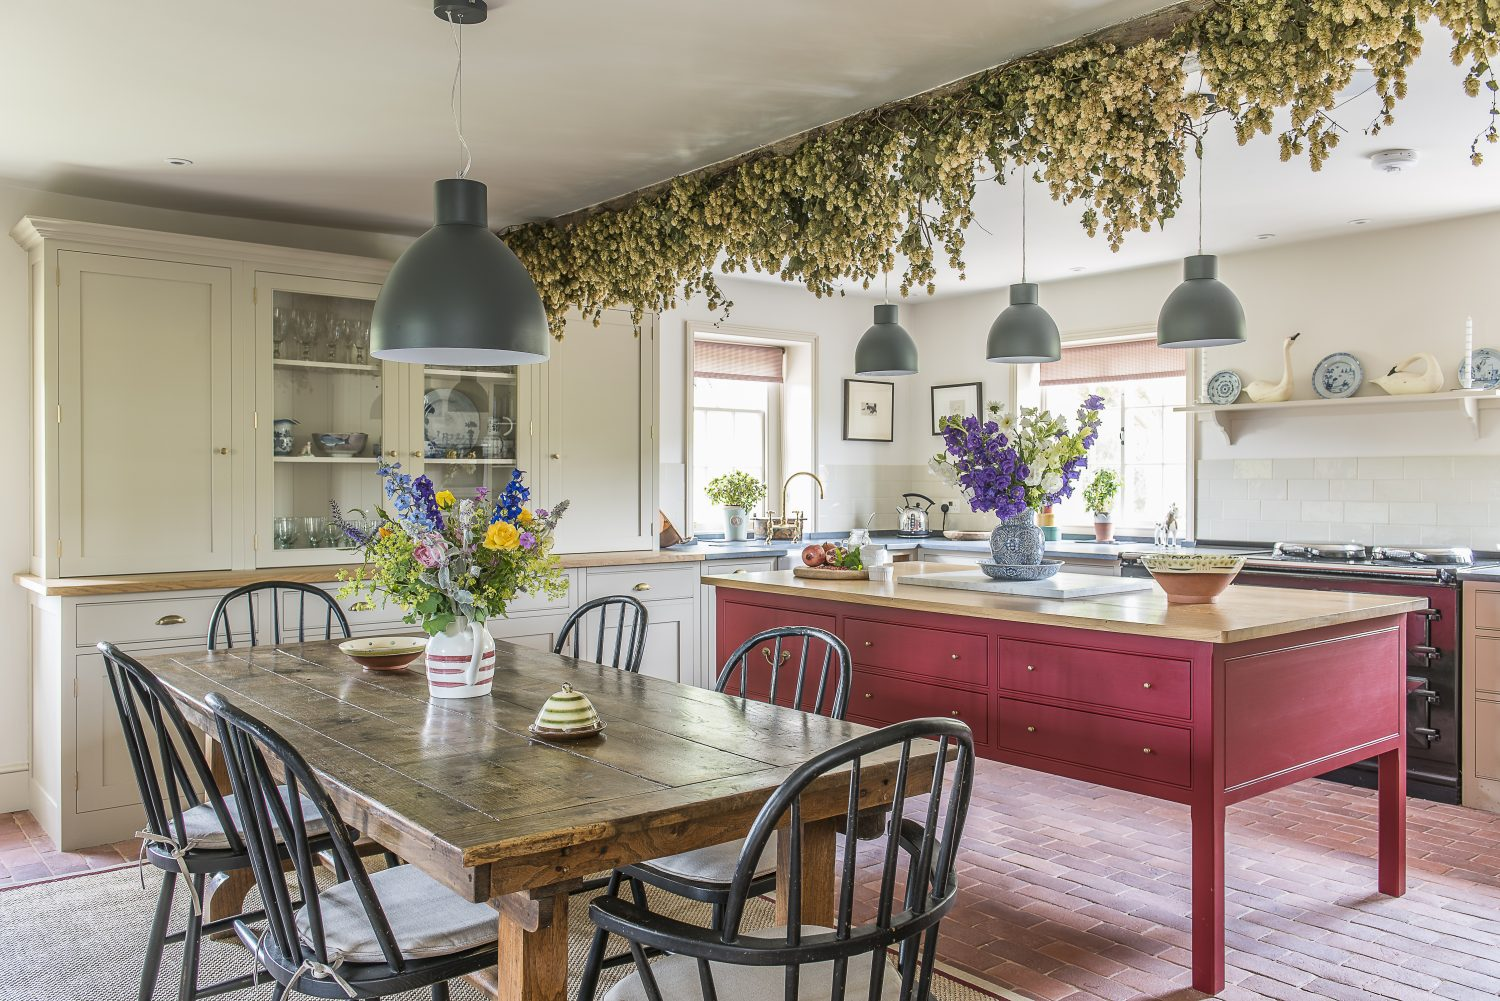 Evernden Interiors sourced the antique kitchen table. The kitchen is by Plain English